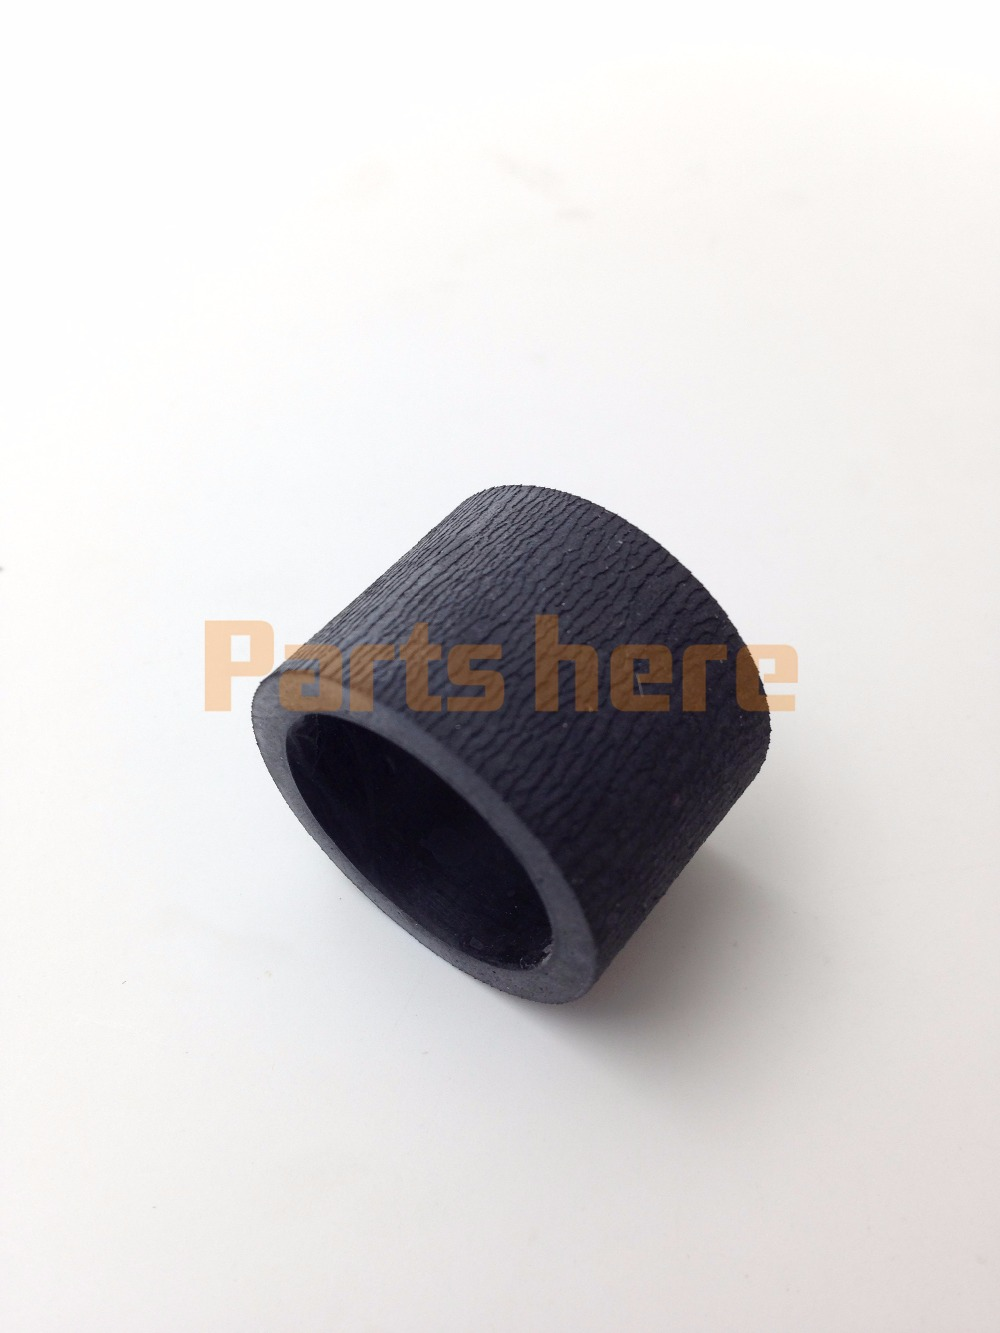 302M294200 2M294200 Feed Roller Tire rubber Pickup Roller for <font><b>Kyocera</b></font> <font><b>FS</b></font> <font><b>1020</b></font> 1025 1120 1125 1220 1320 1325 1040 1041 1060 image